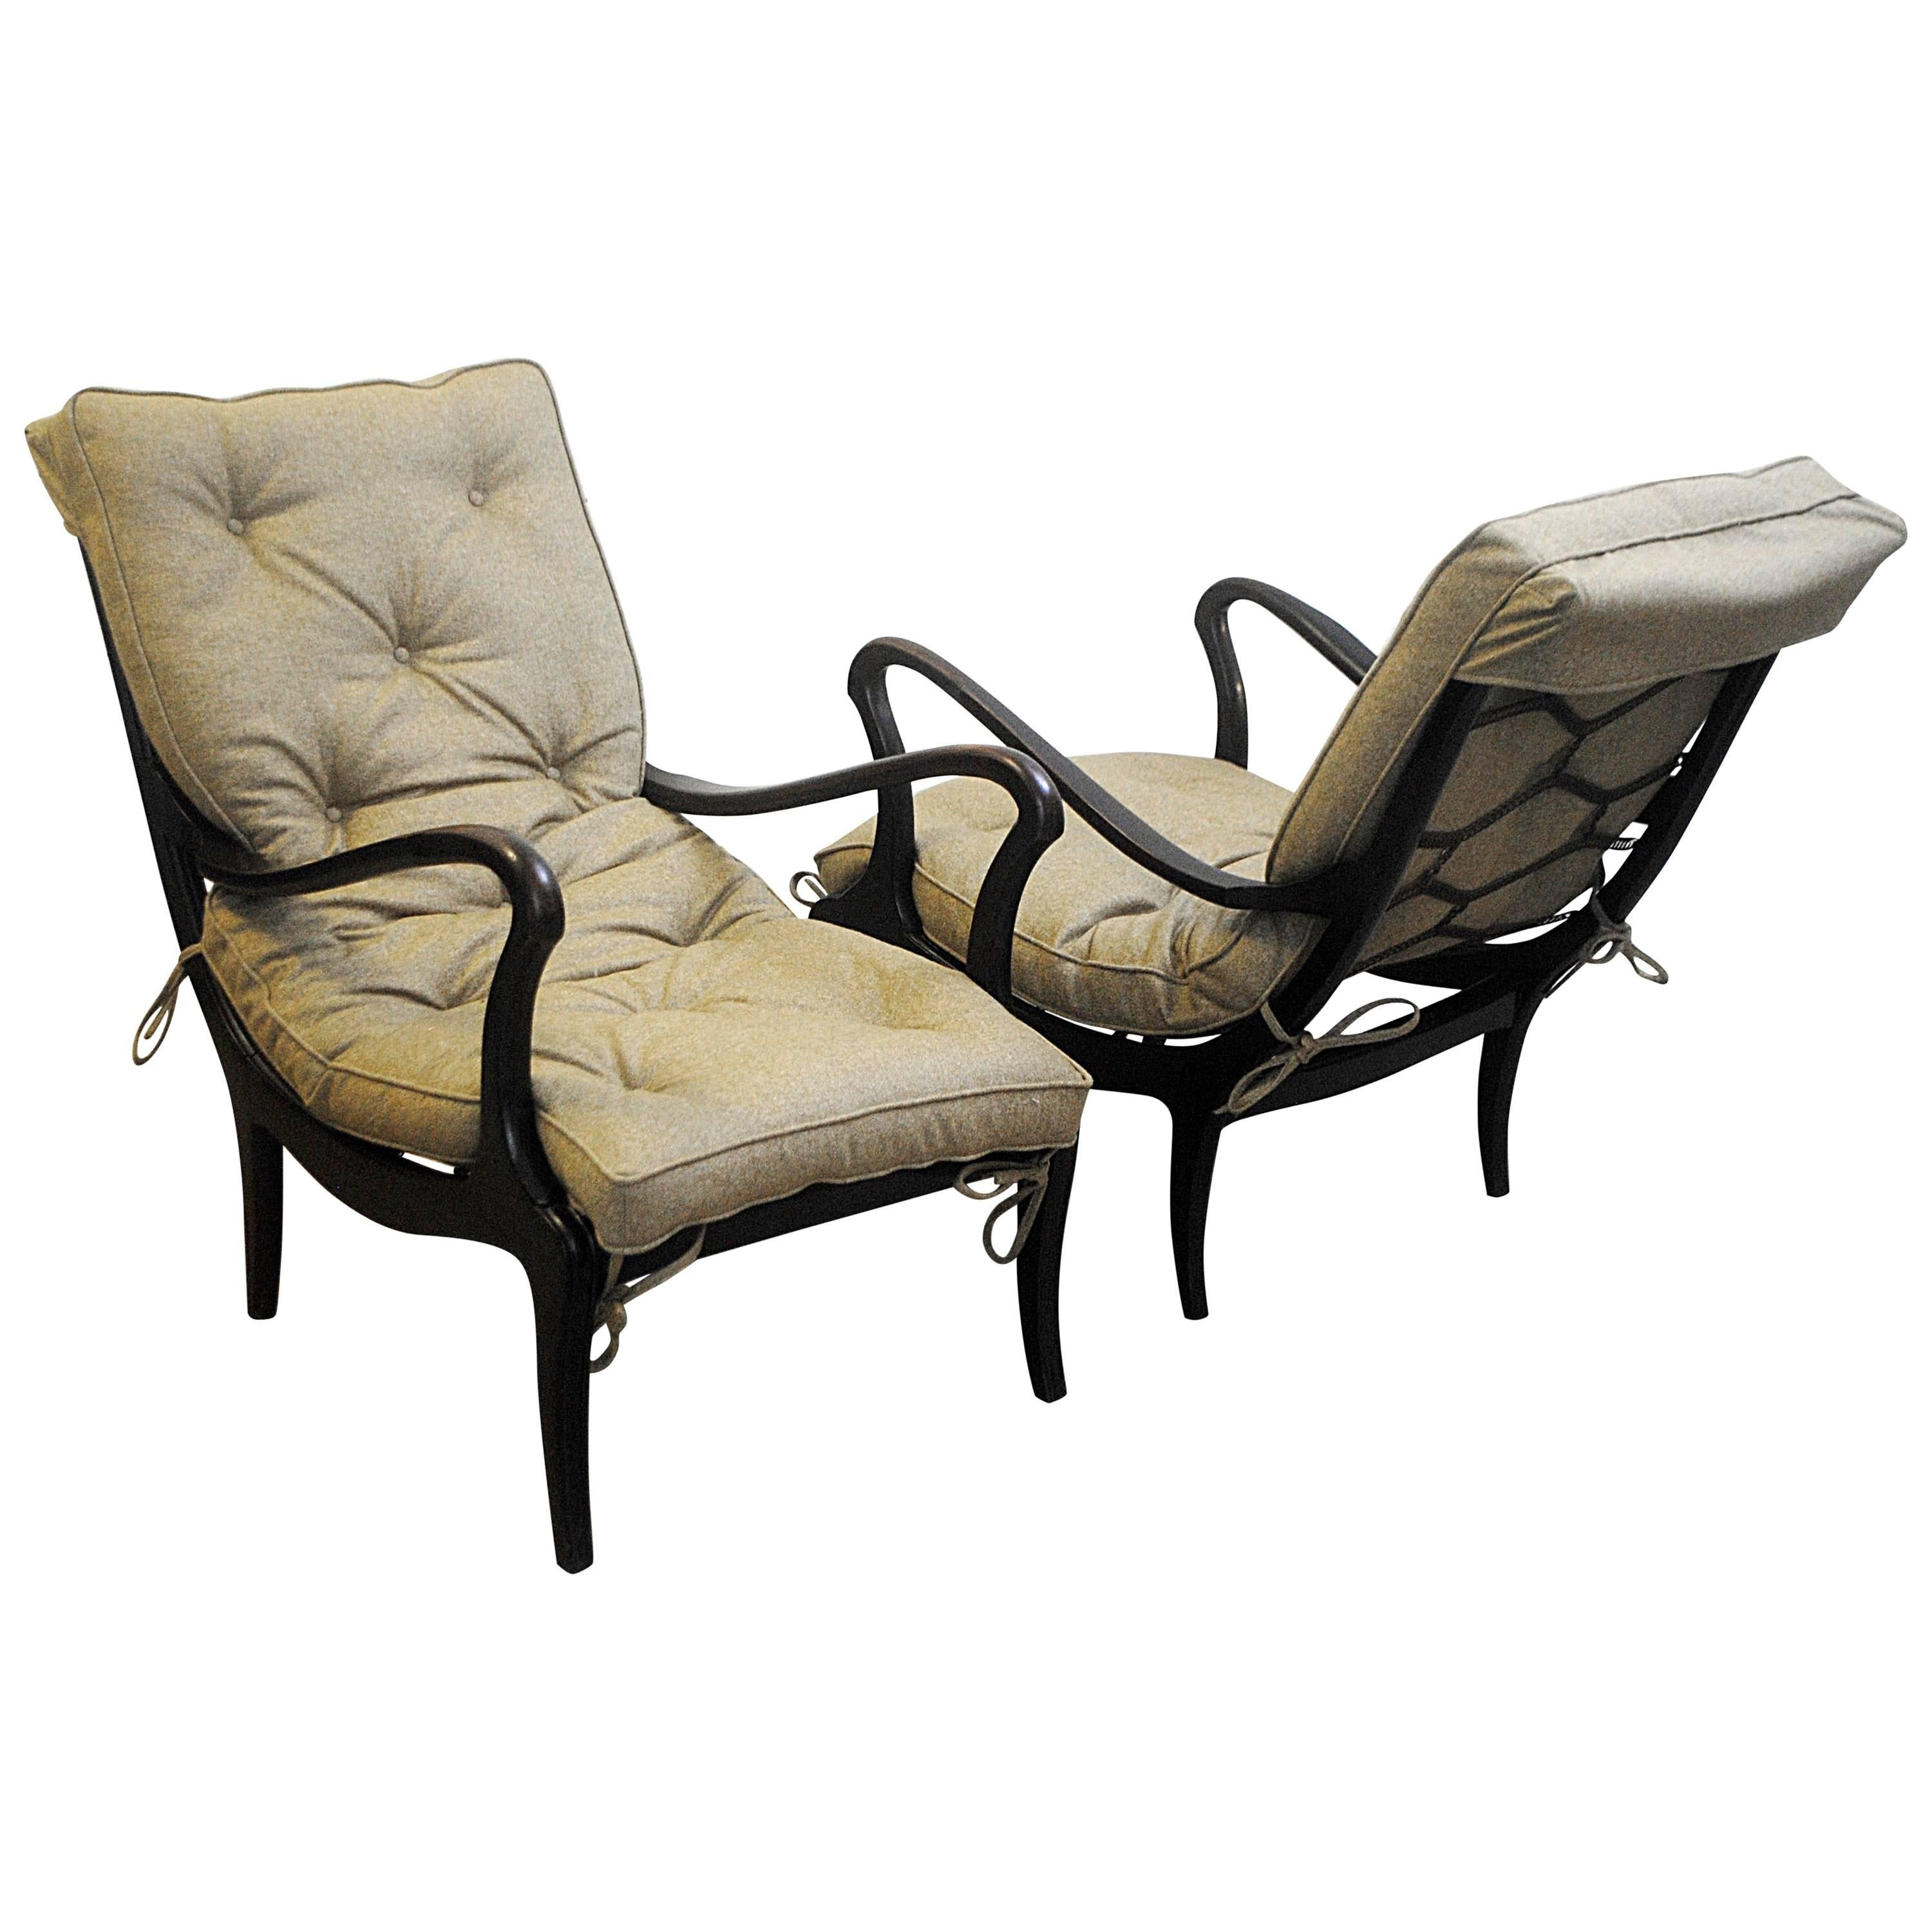 Pair Of Two Lounge Chairs By Ezio Longhi 1950s, New Upholstery For Sale